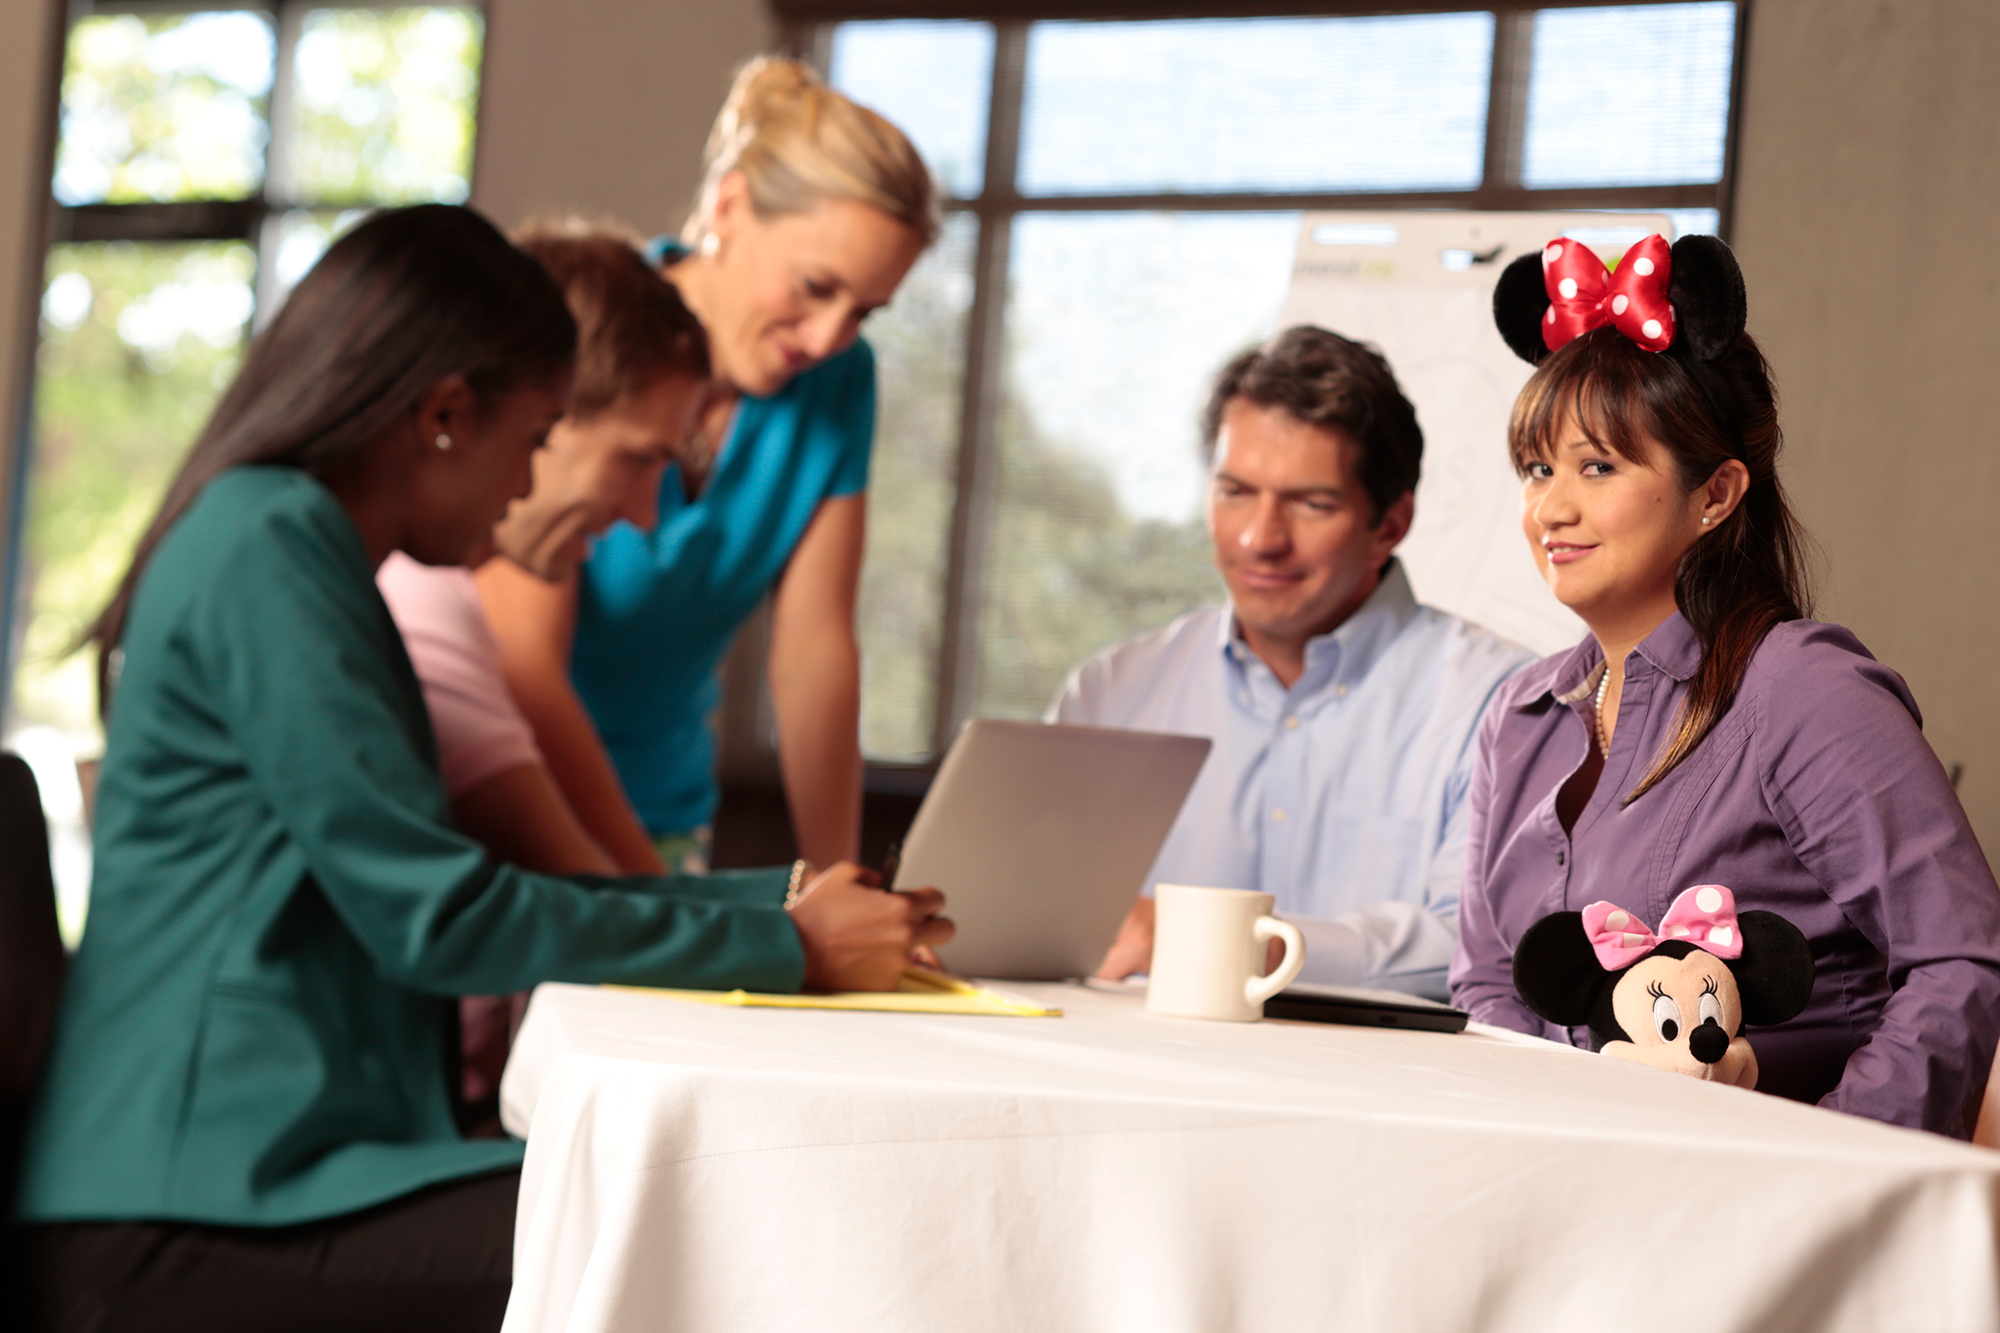 Plan your next meeting at Anaheim Majestic Garden Hotel, a top event venue in Anaheim, California